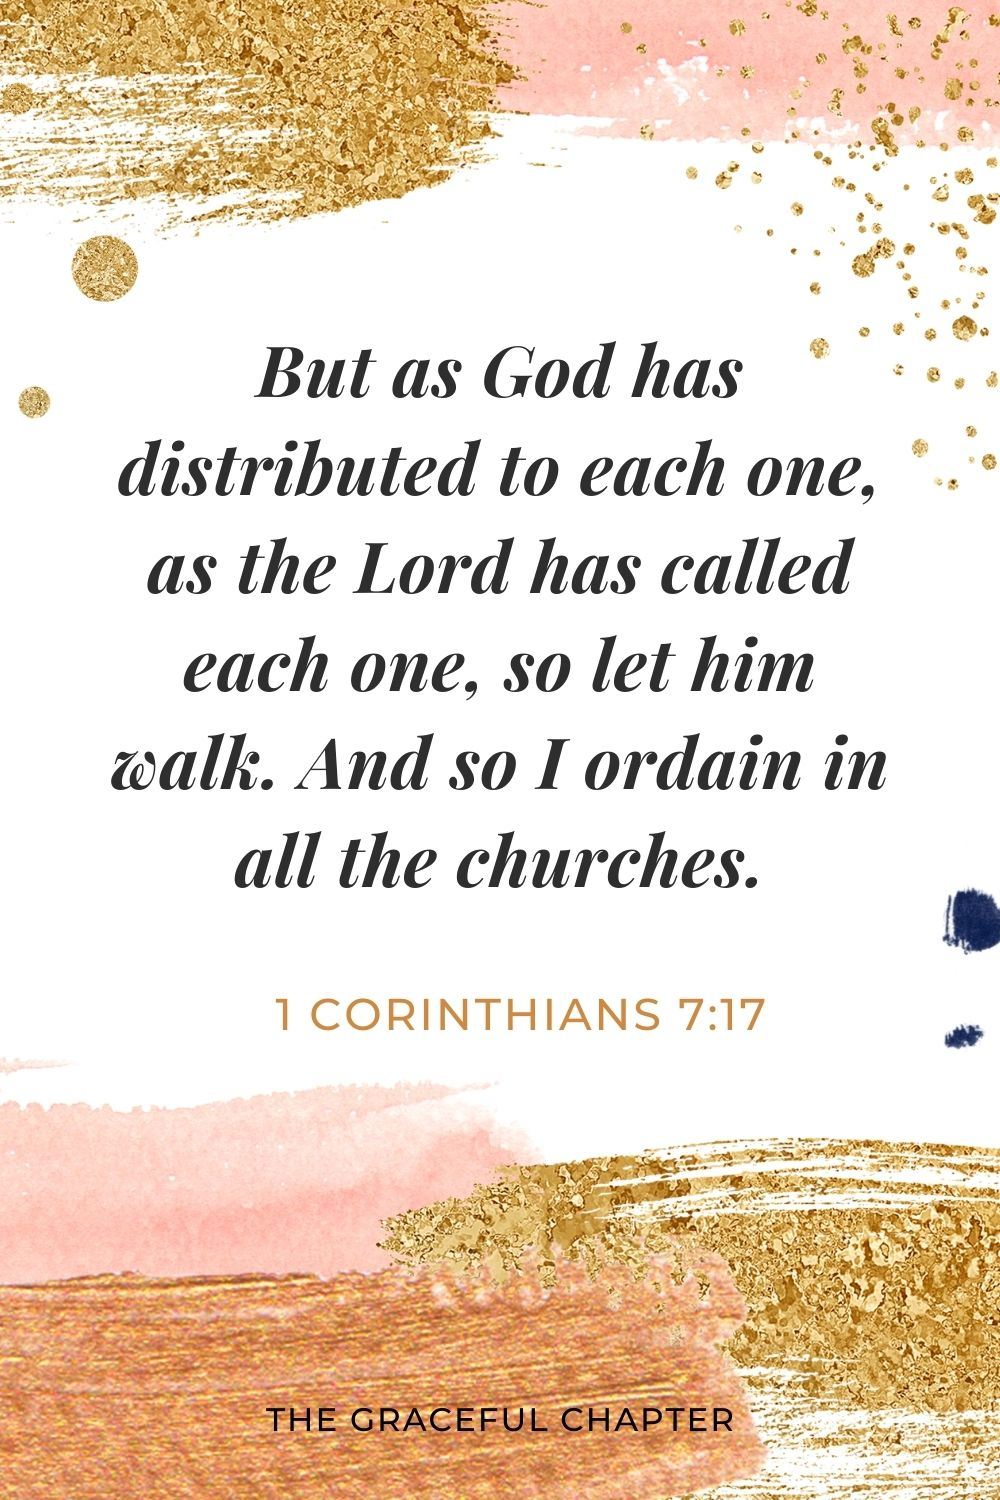 But as God has distributed to each one, as the Lord has called each one, so let him walk. And so I ordain in all the churches. 1 Corinthians 7:17